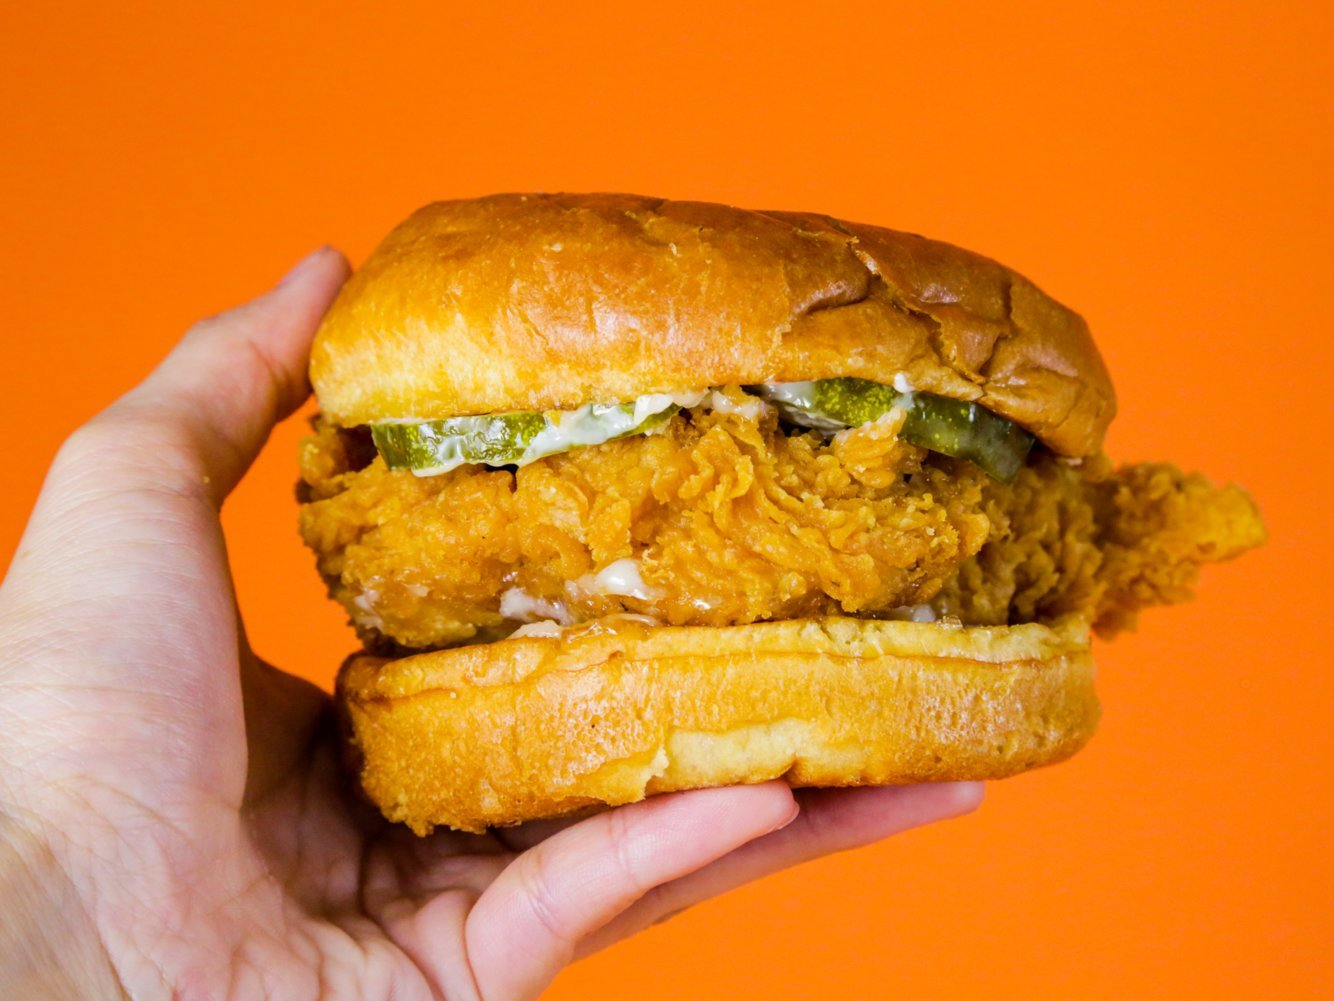 Social-media battles, massive crowds, and overworked employees: Inside the rise and fall of Popeyes' chicken sandwich